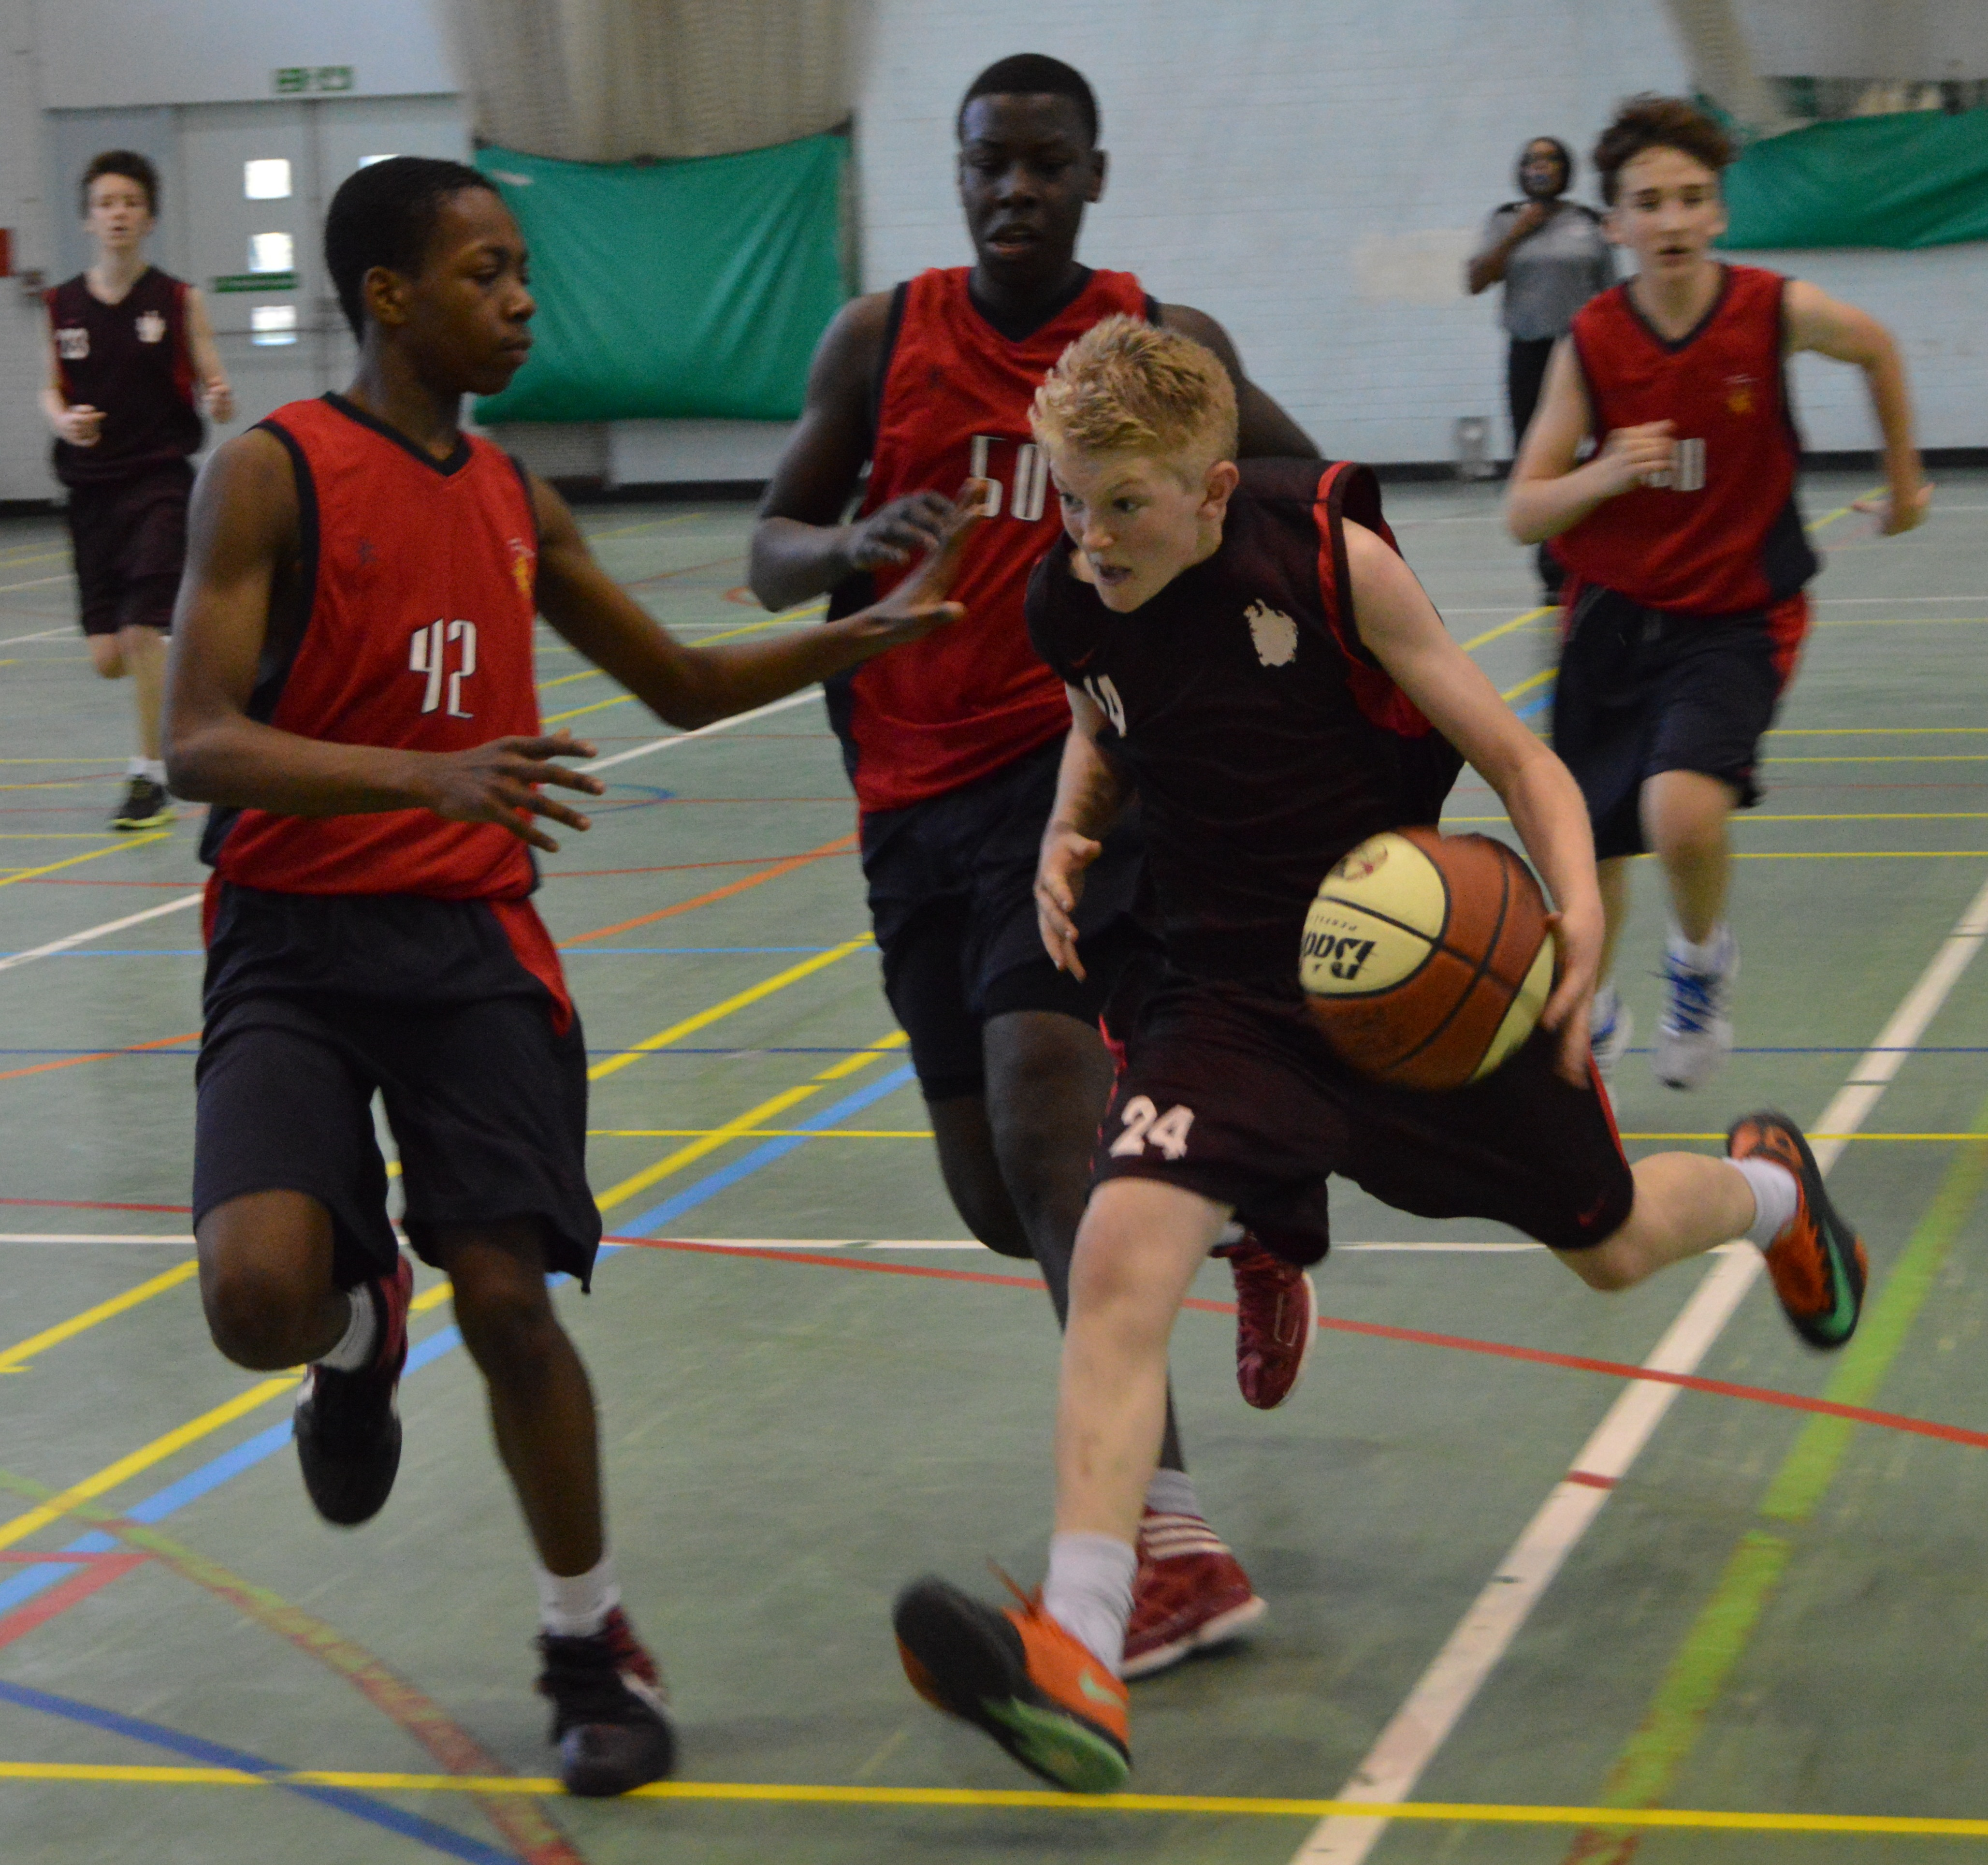 Under 14 Alleyn's basketball player in action (in black)